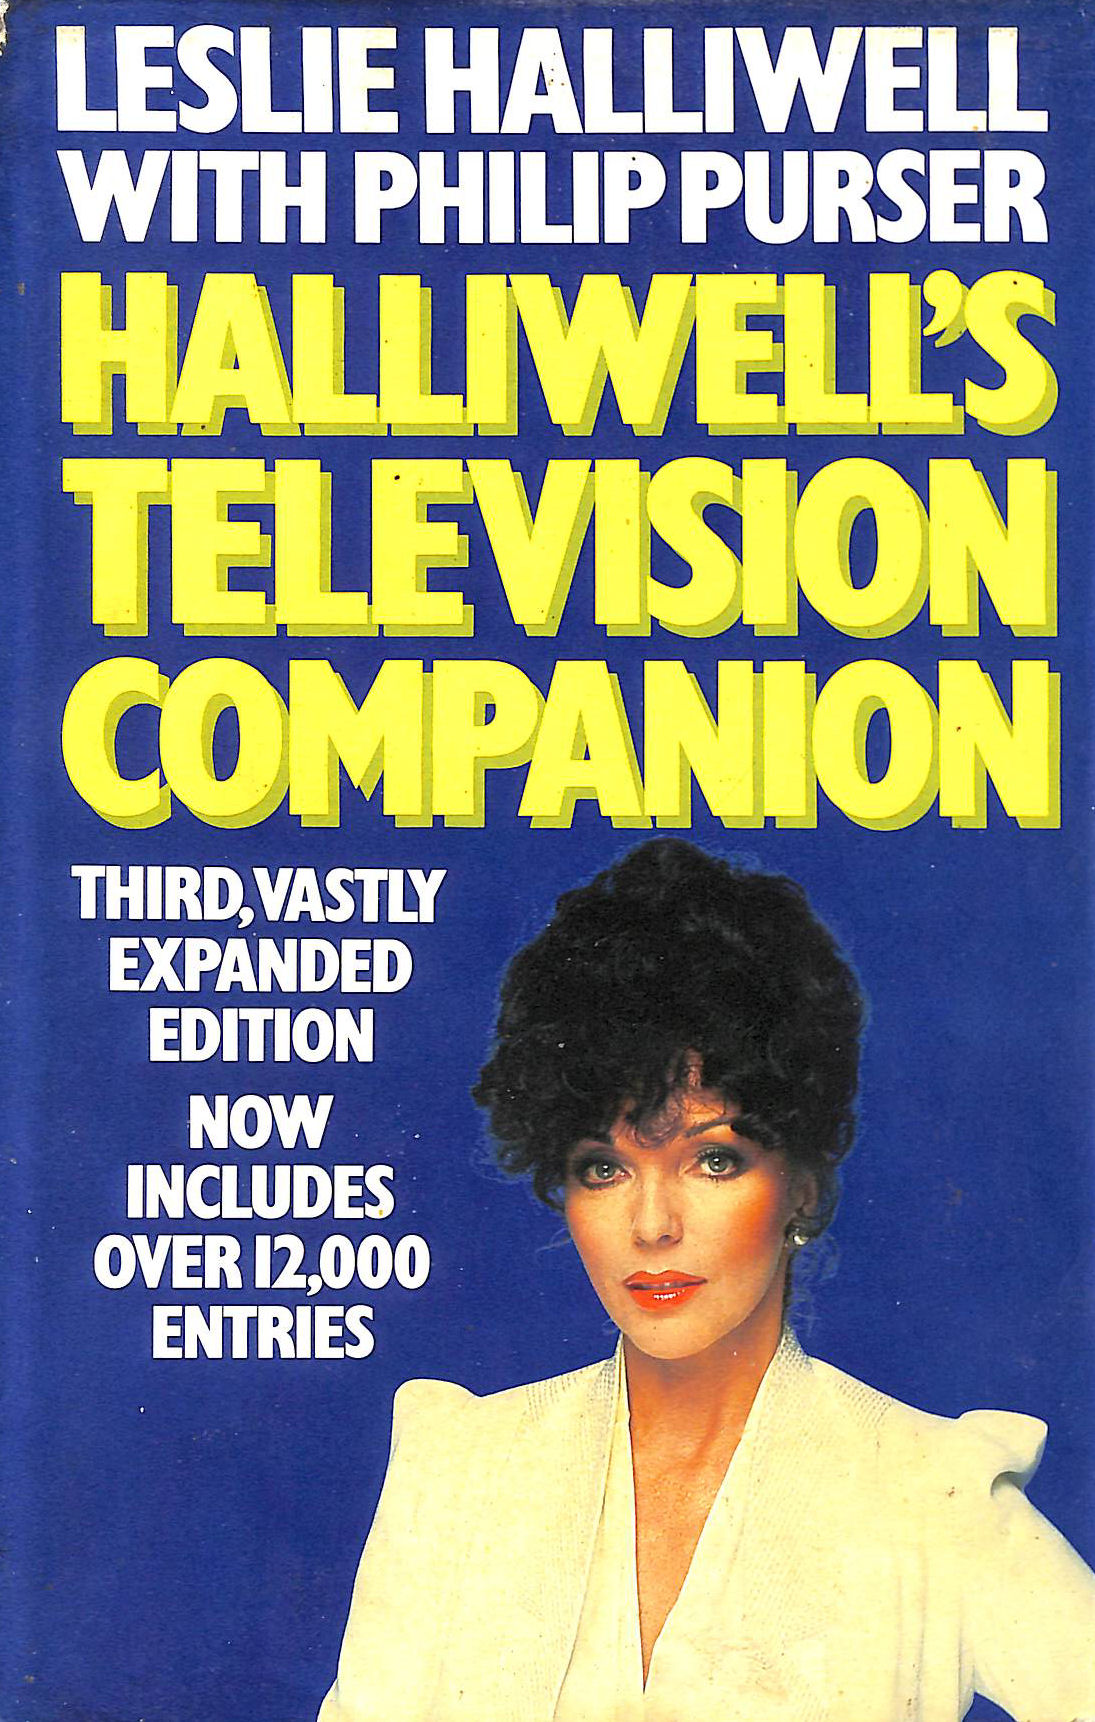 Image for Halliwell's Television Companion